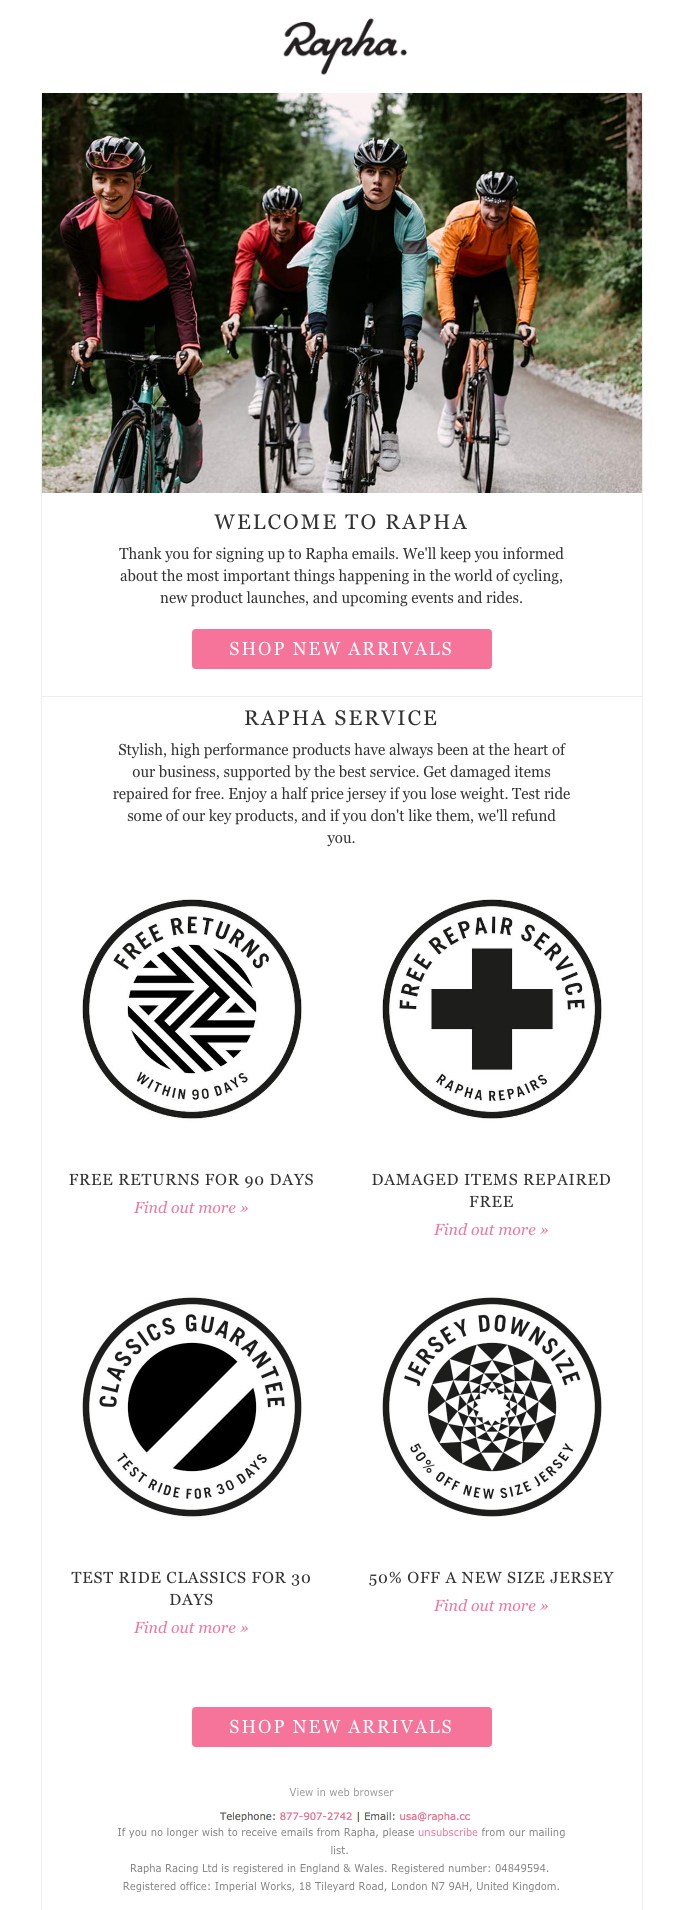 Rapha: Welcome to Rapha